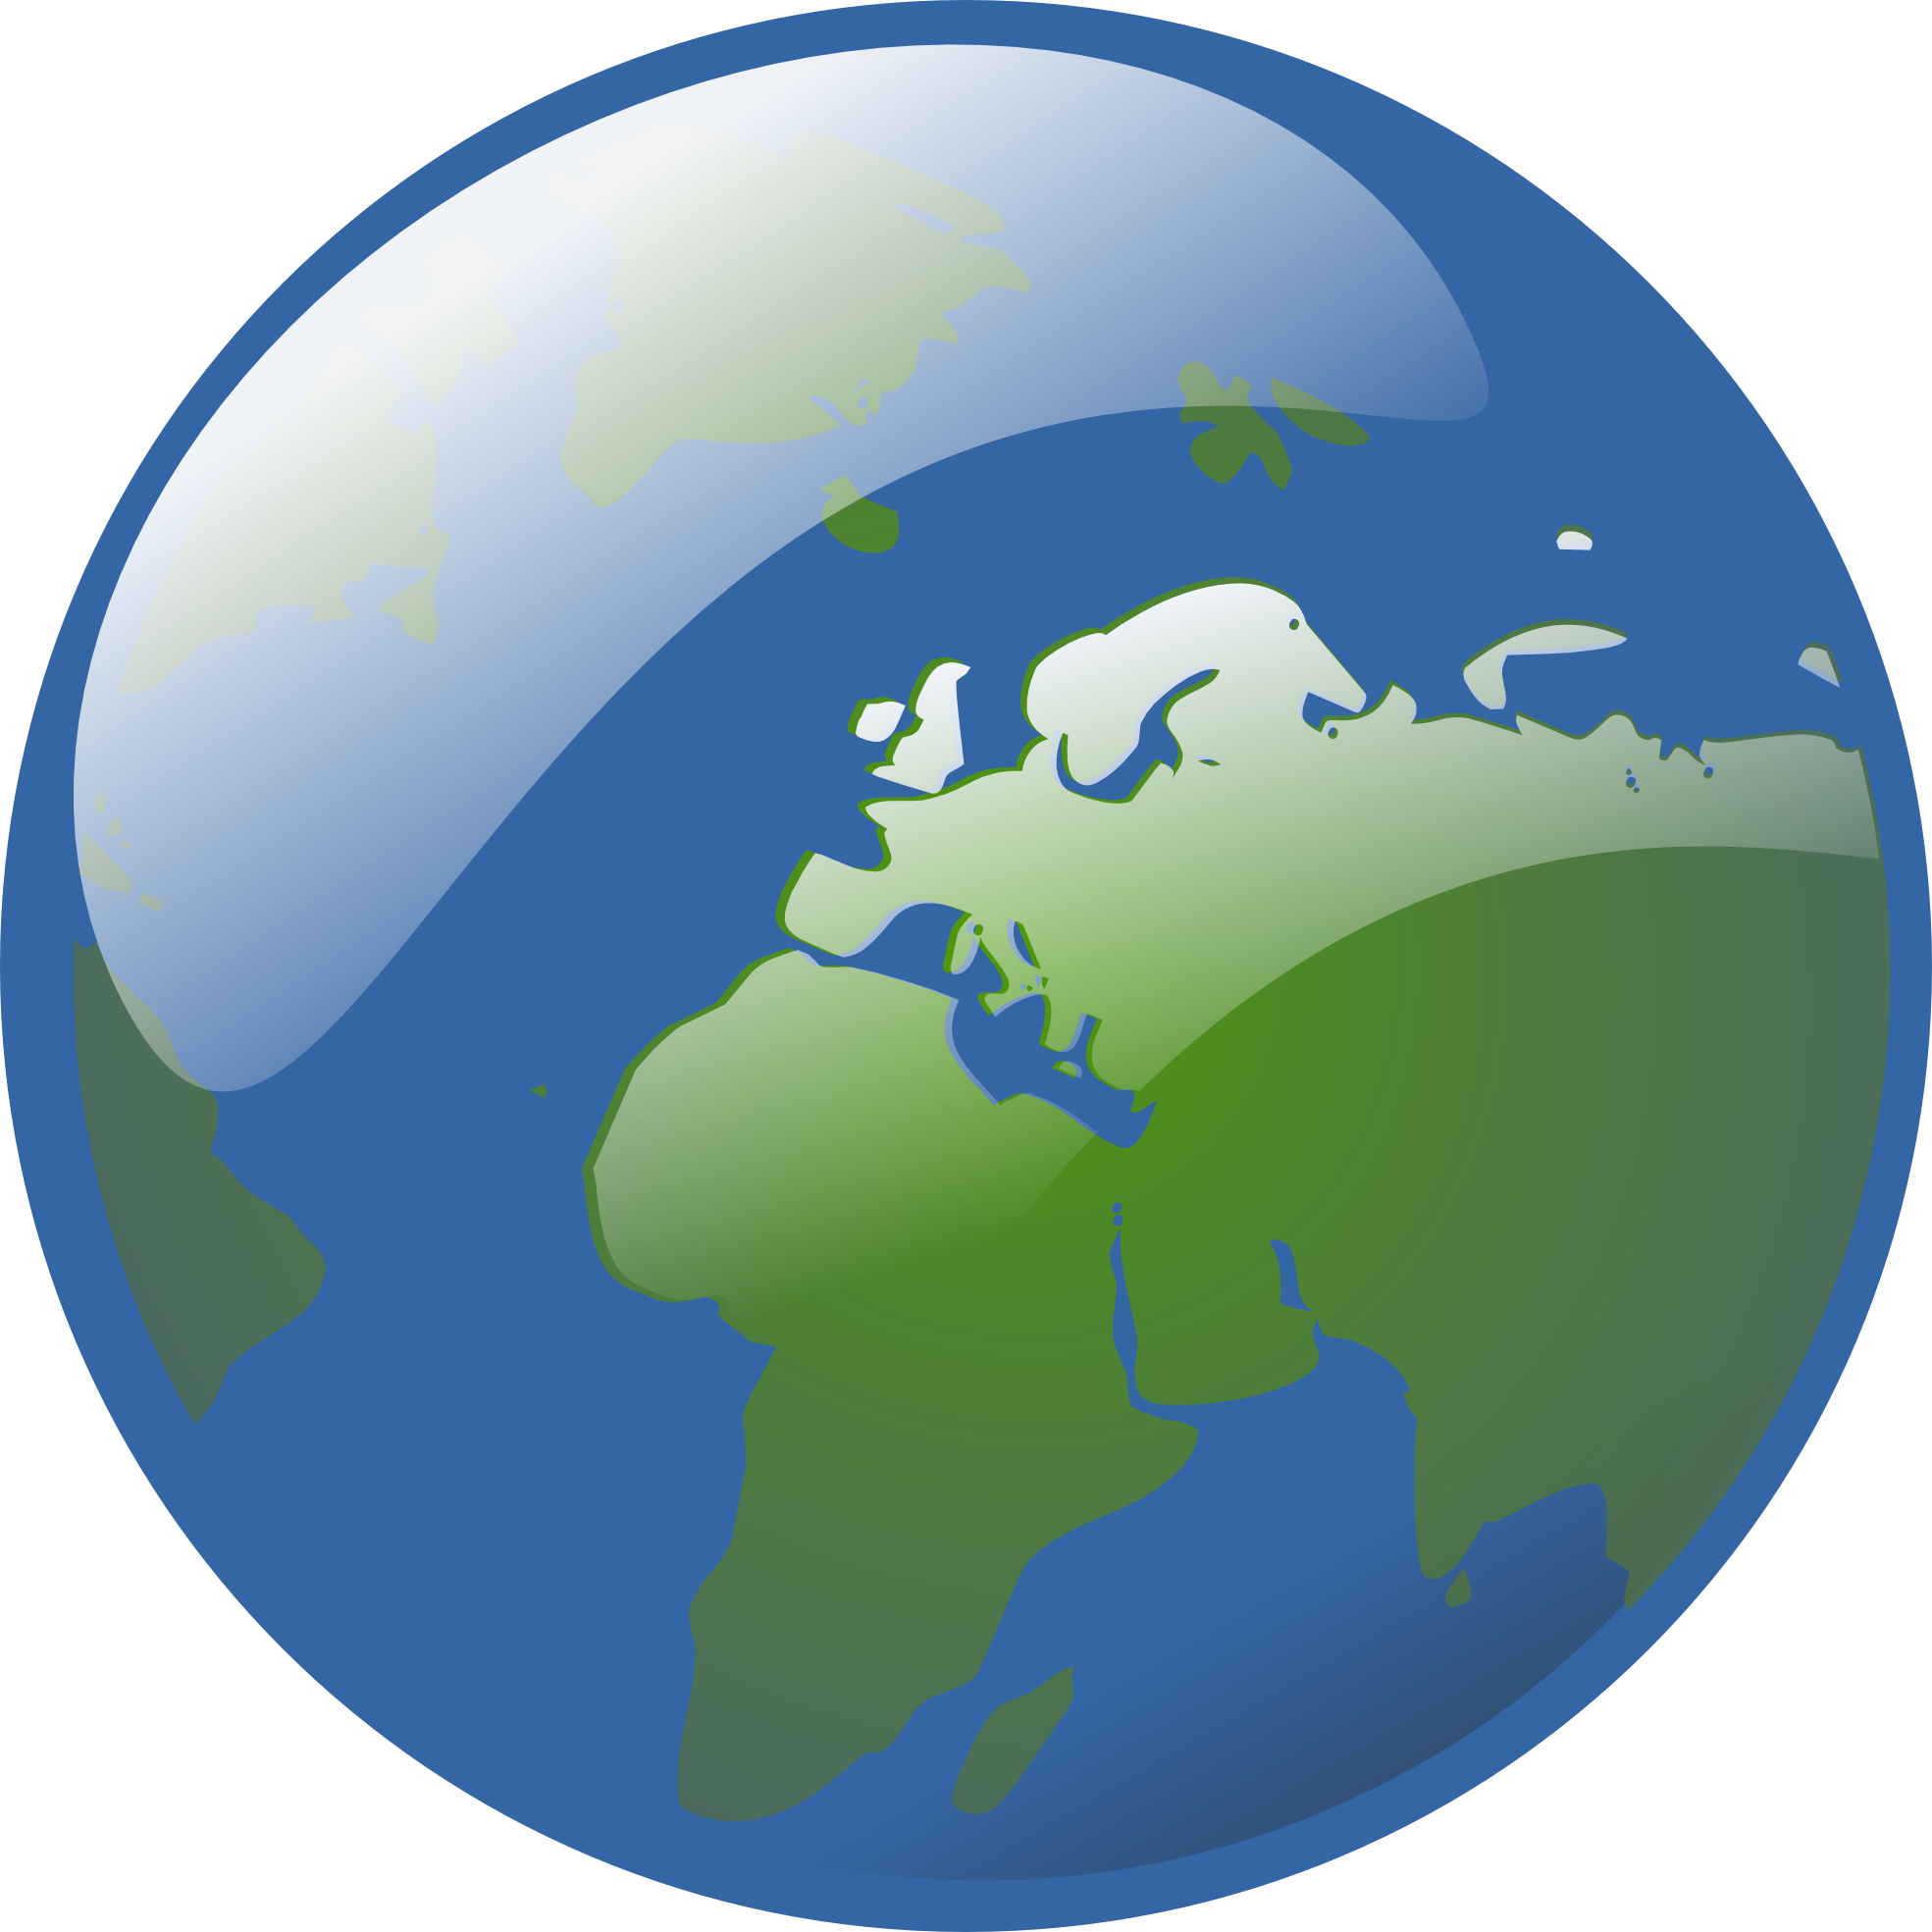 Download PNG image - Earth Png Hd - The Earth PNG